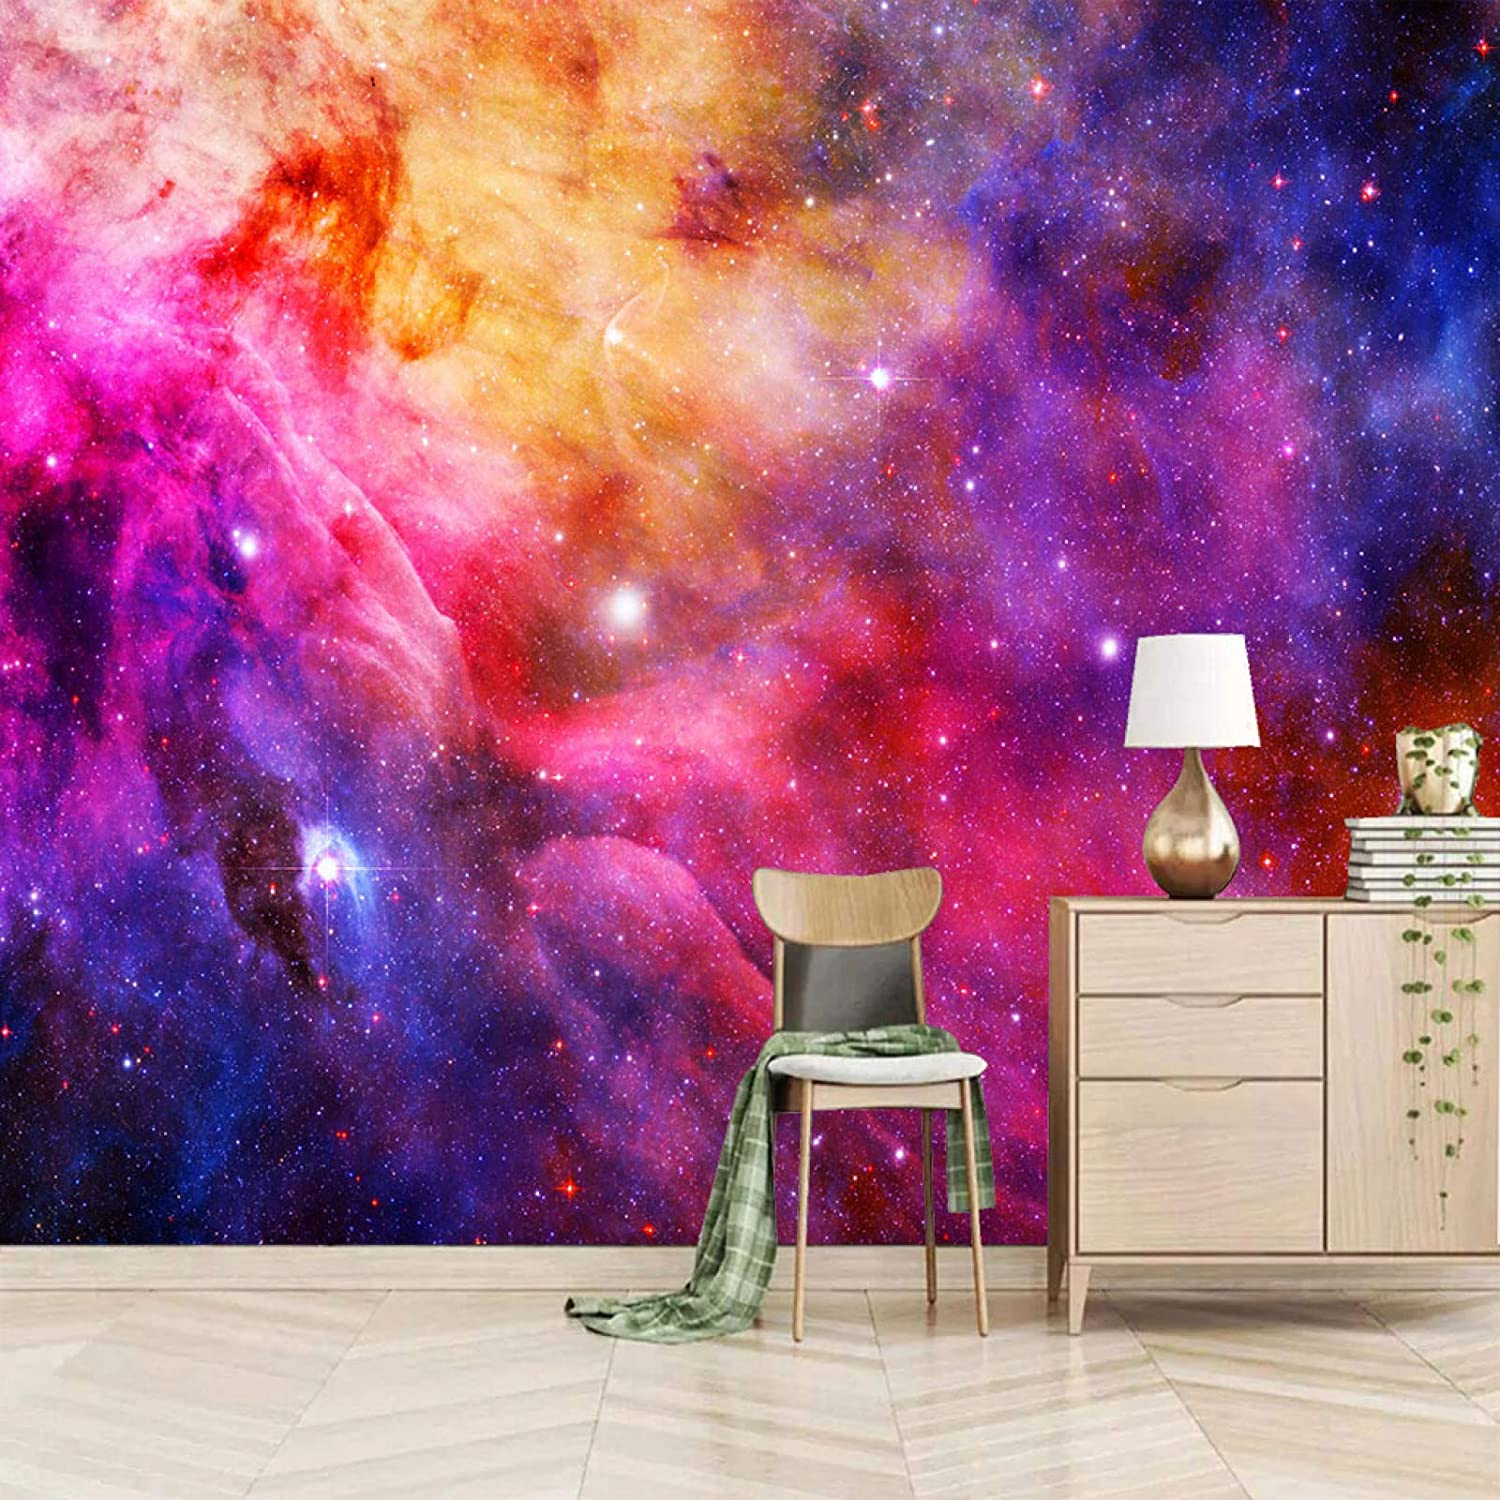 XiaoCha Cool Starry Sky Galaxy Landscape Free Shipping New 3D Outlet SALE Wall Self-Adhesive S